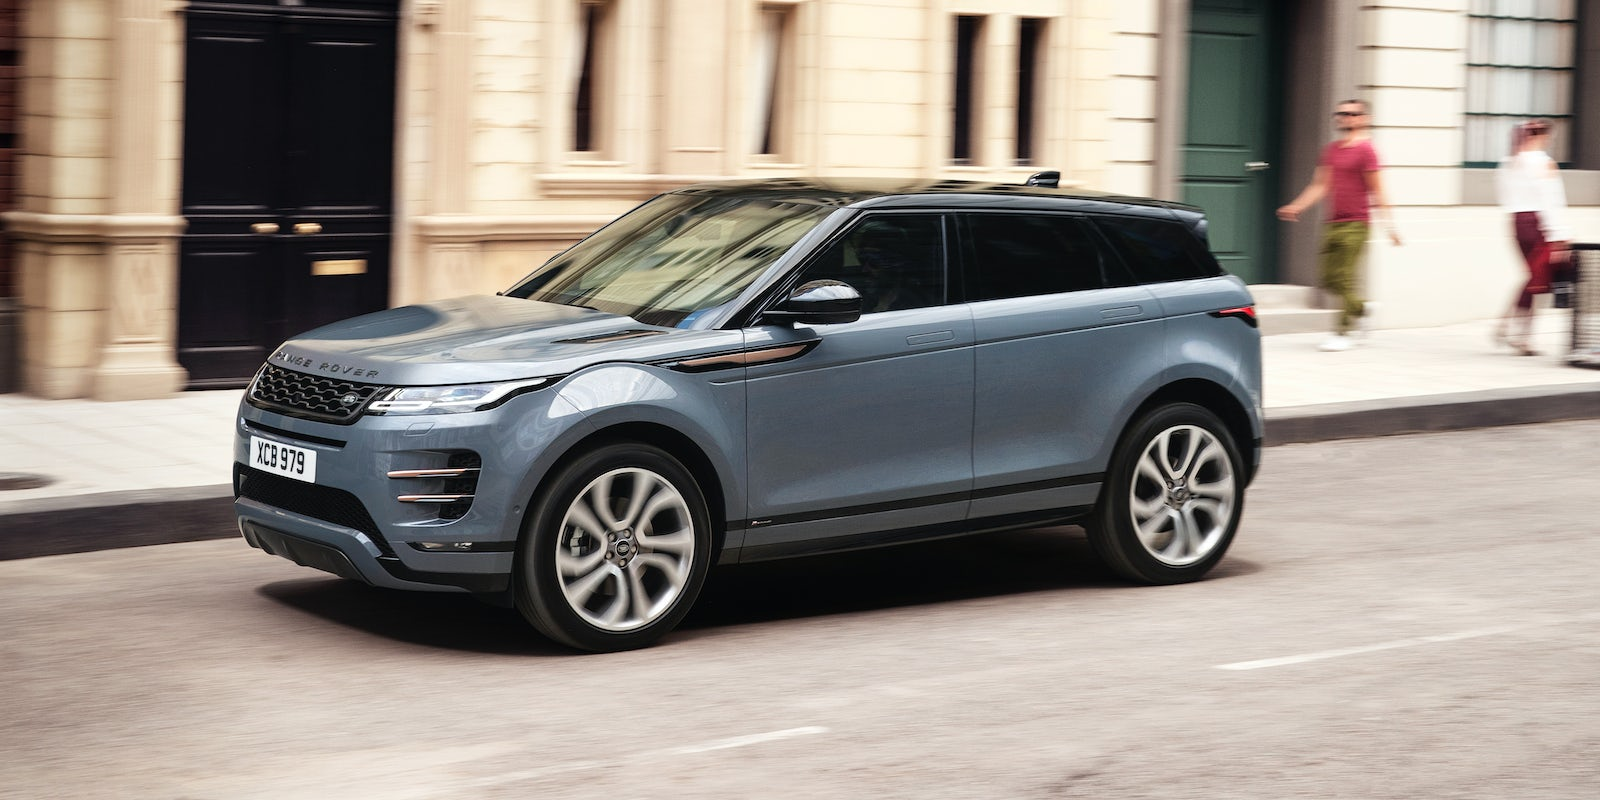 New Range Rover Evoque Review | carwow